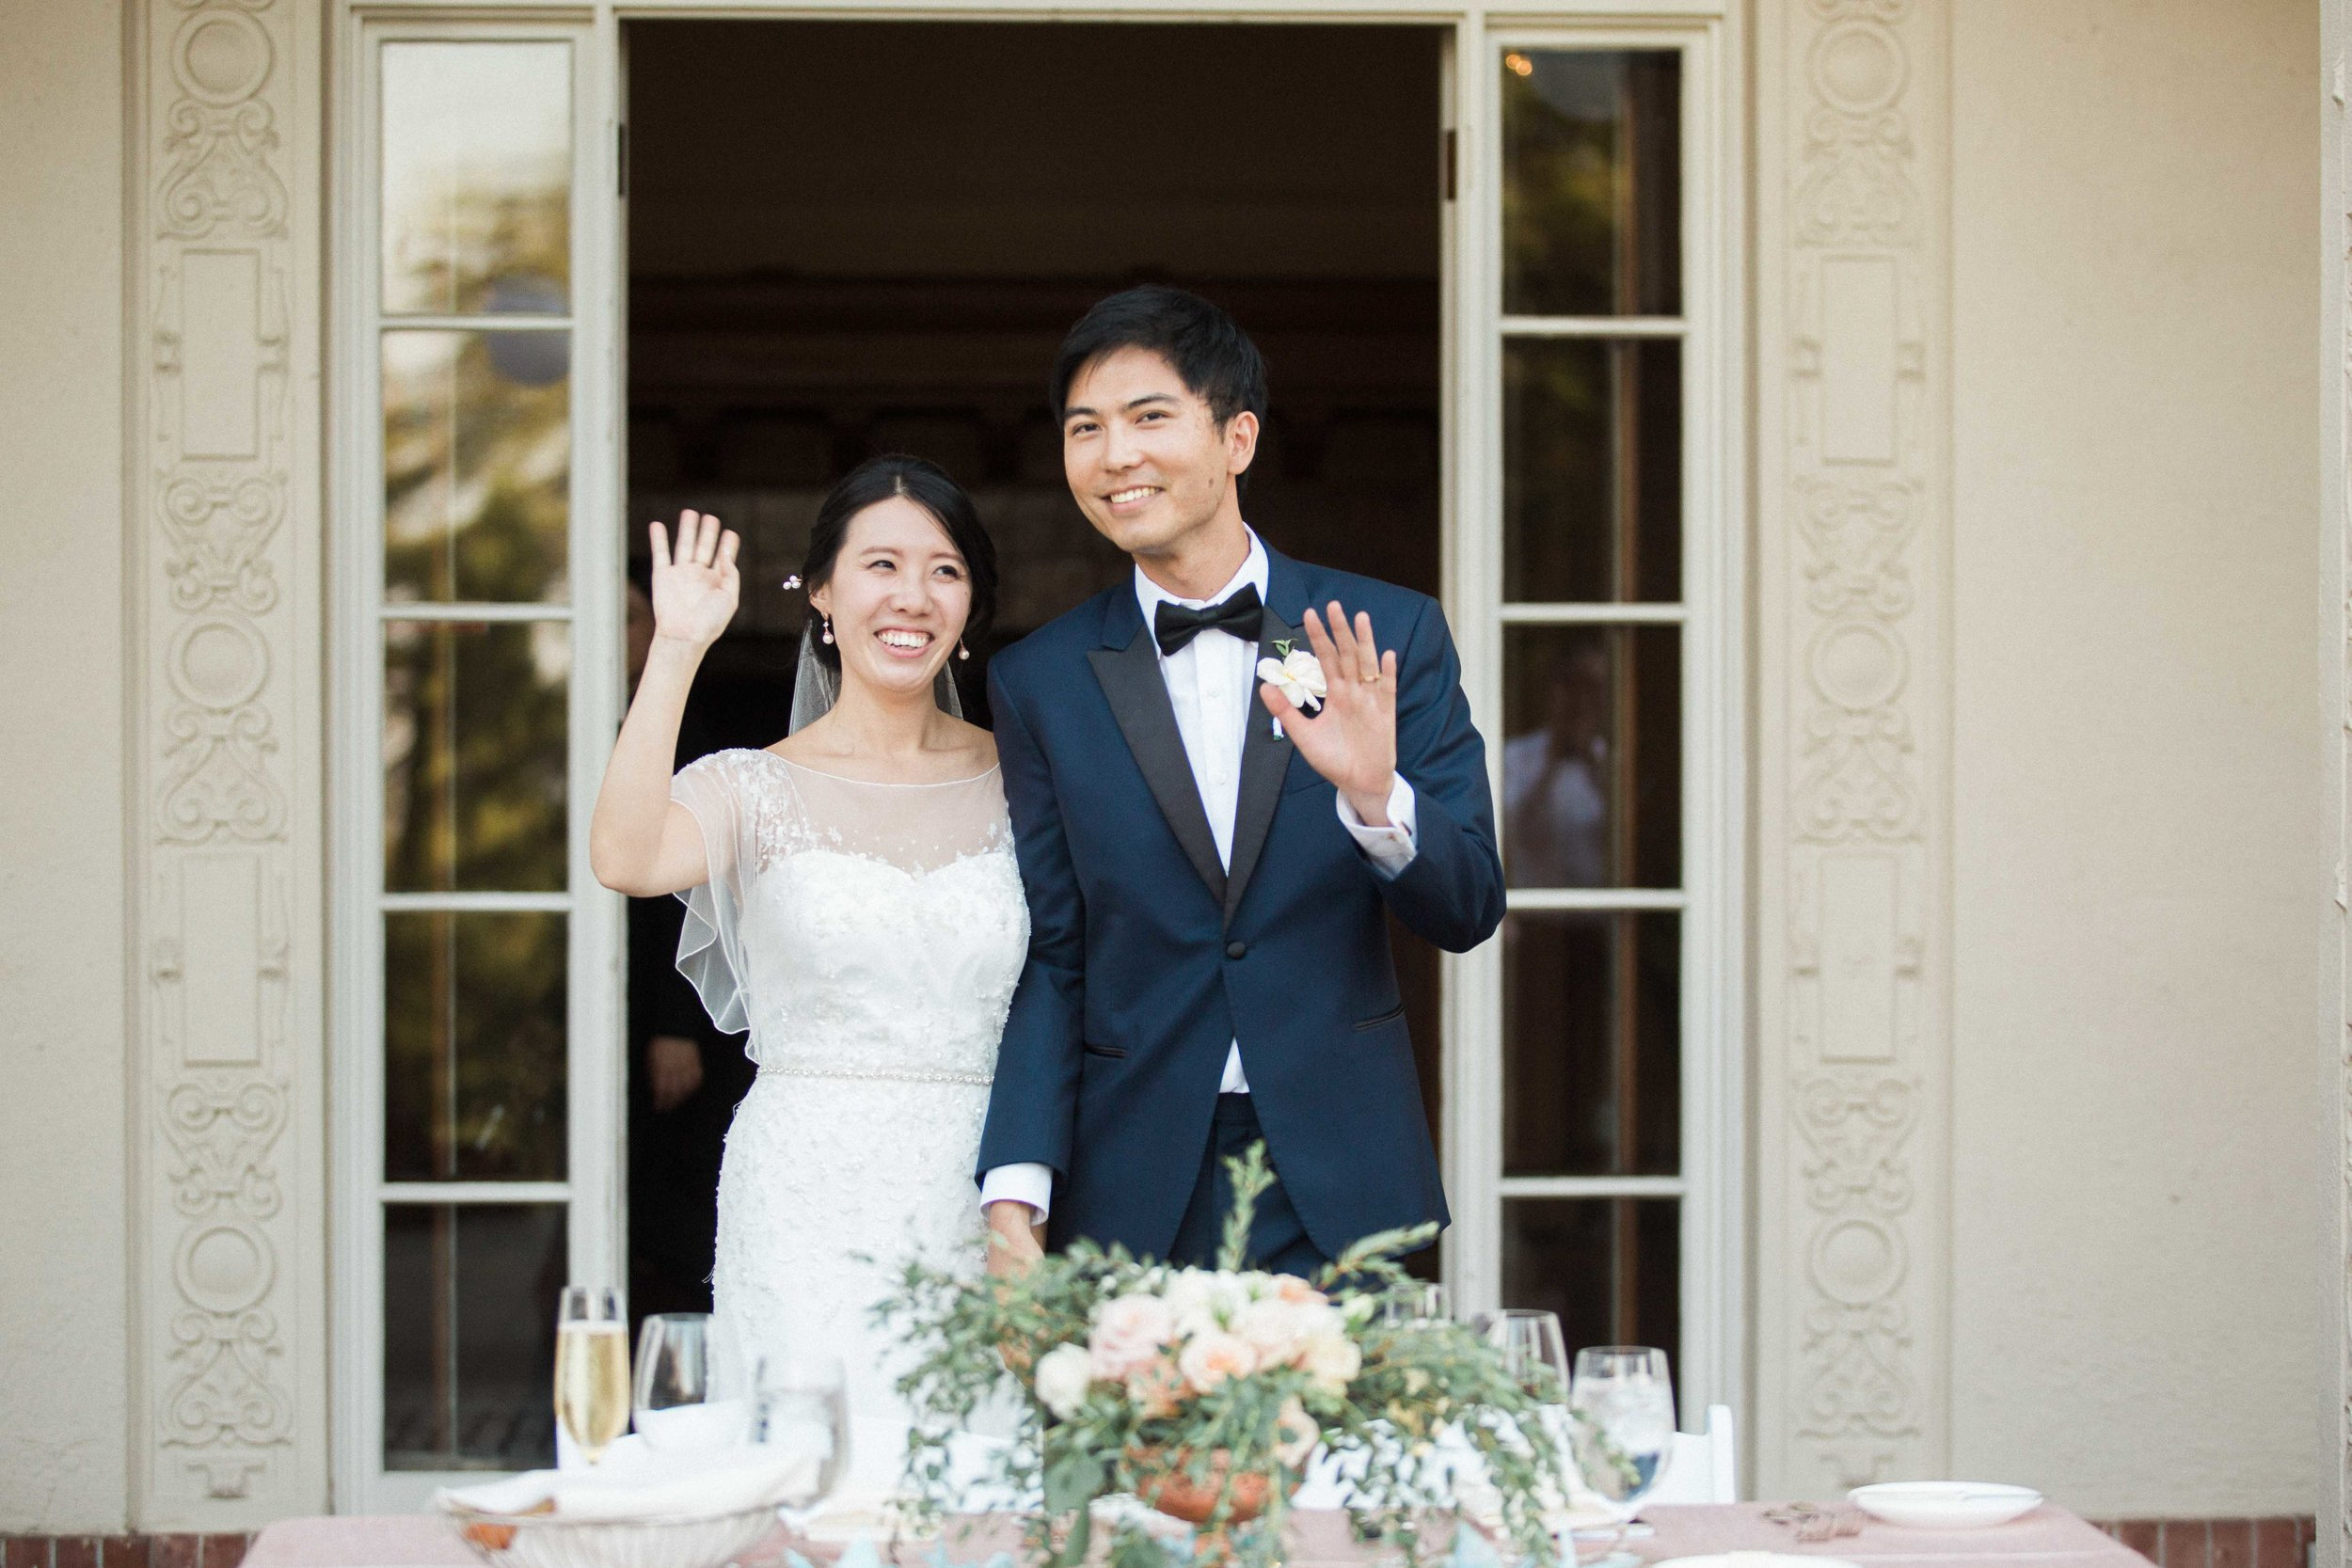 Villa_Montalvo_Wedding_Photographer_Videographer_San_Francisco166.jpg